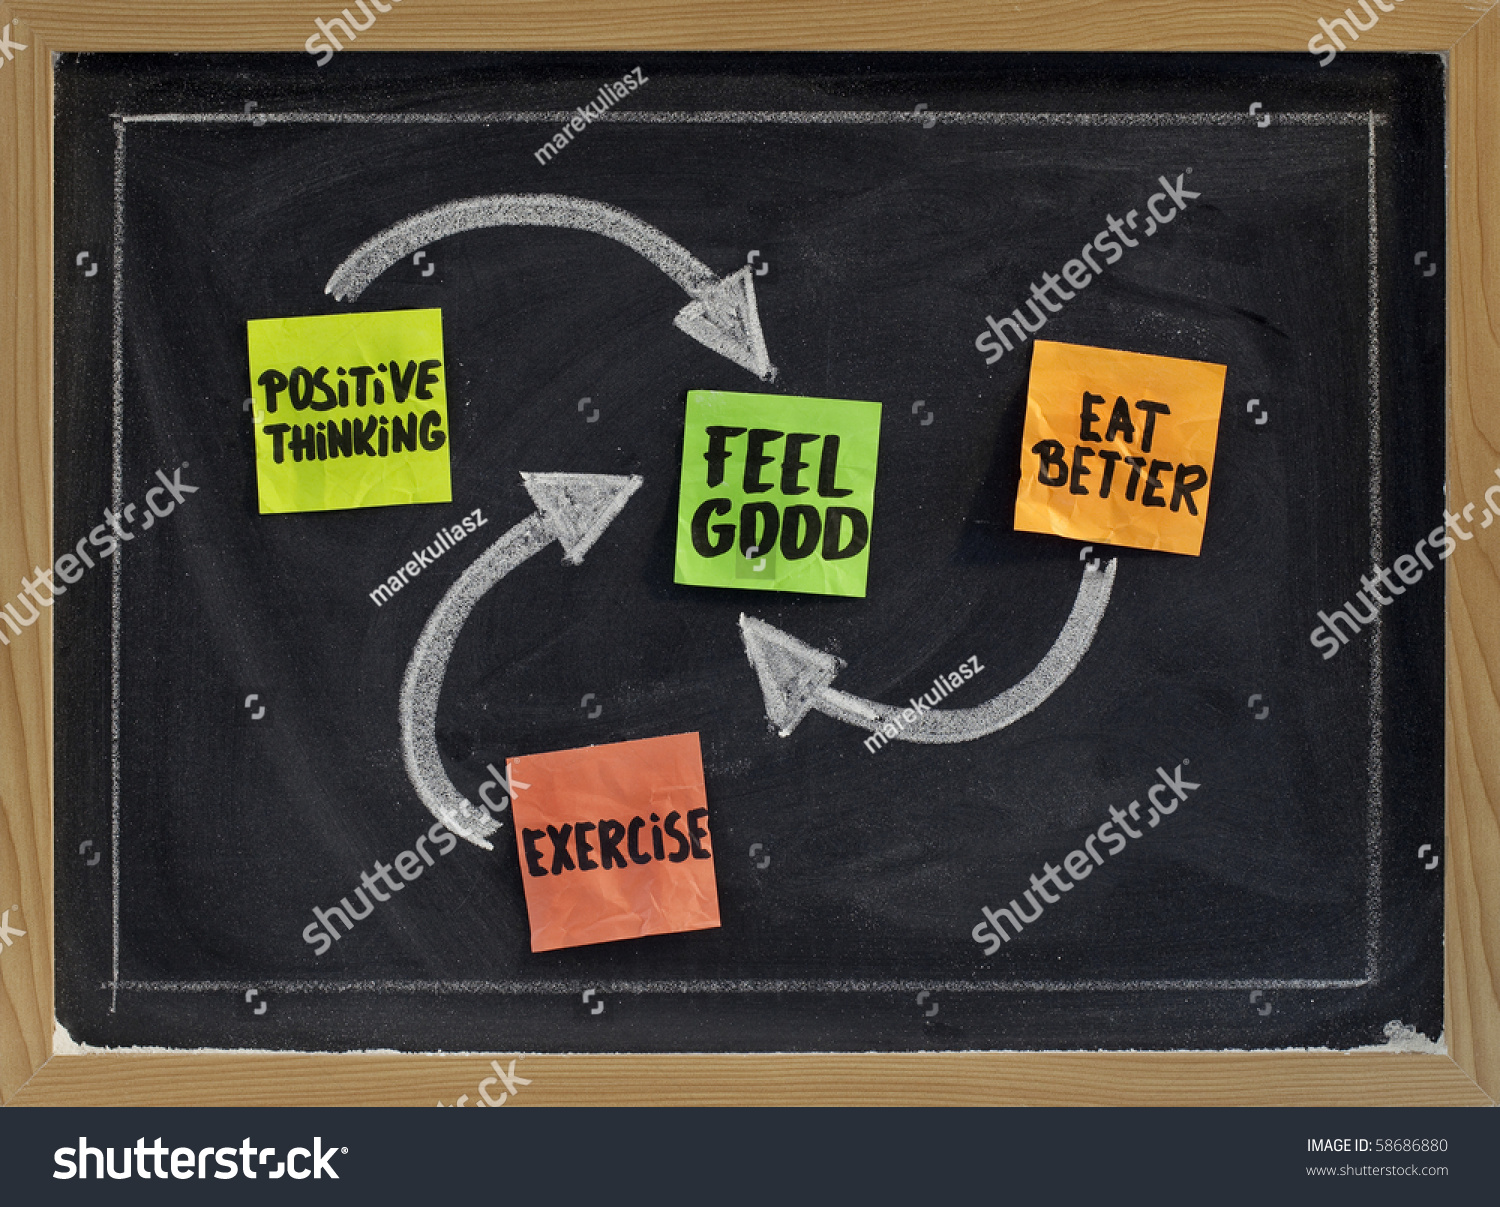 Positive Thinking Exercise Eat Better Concept Stock Photo ...